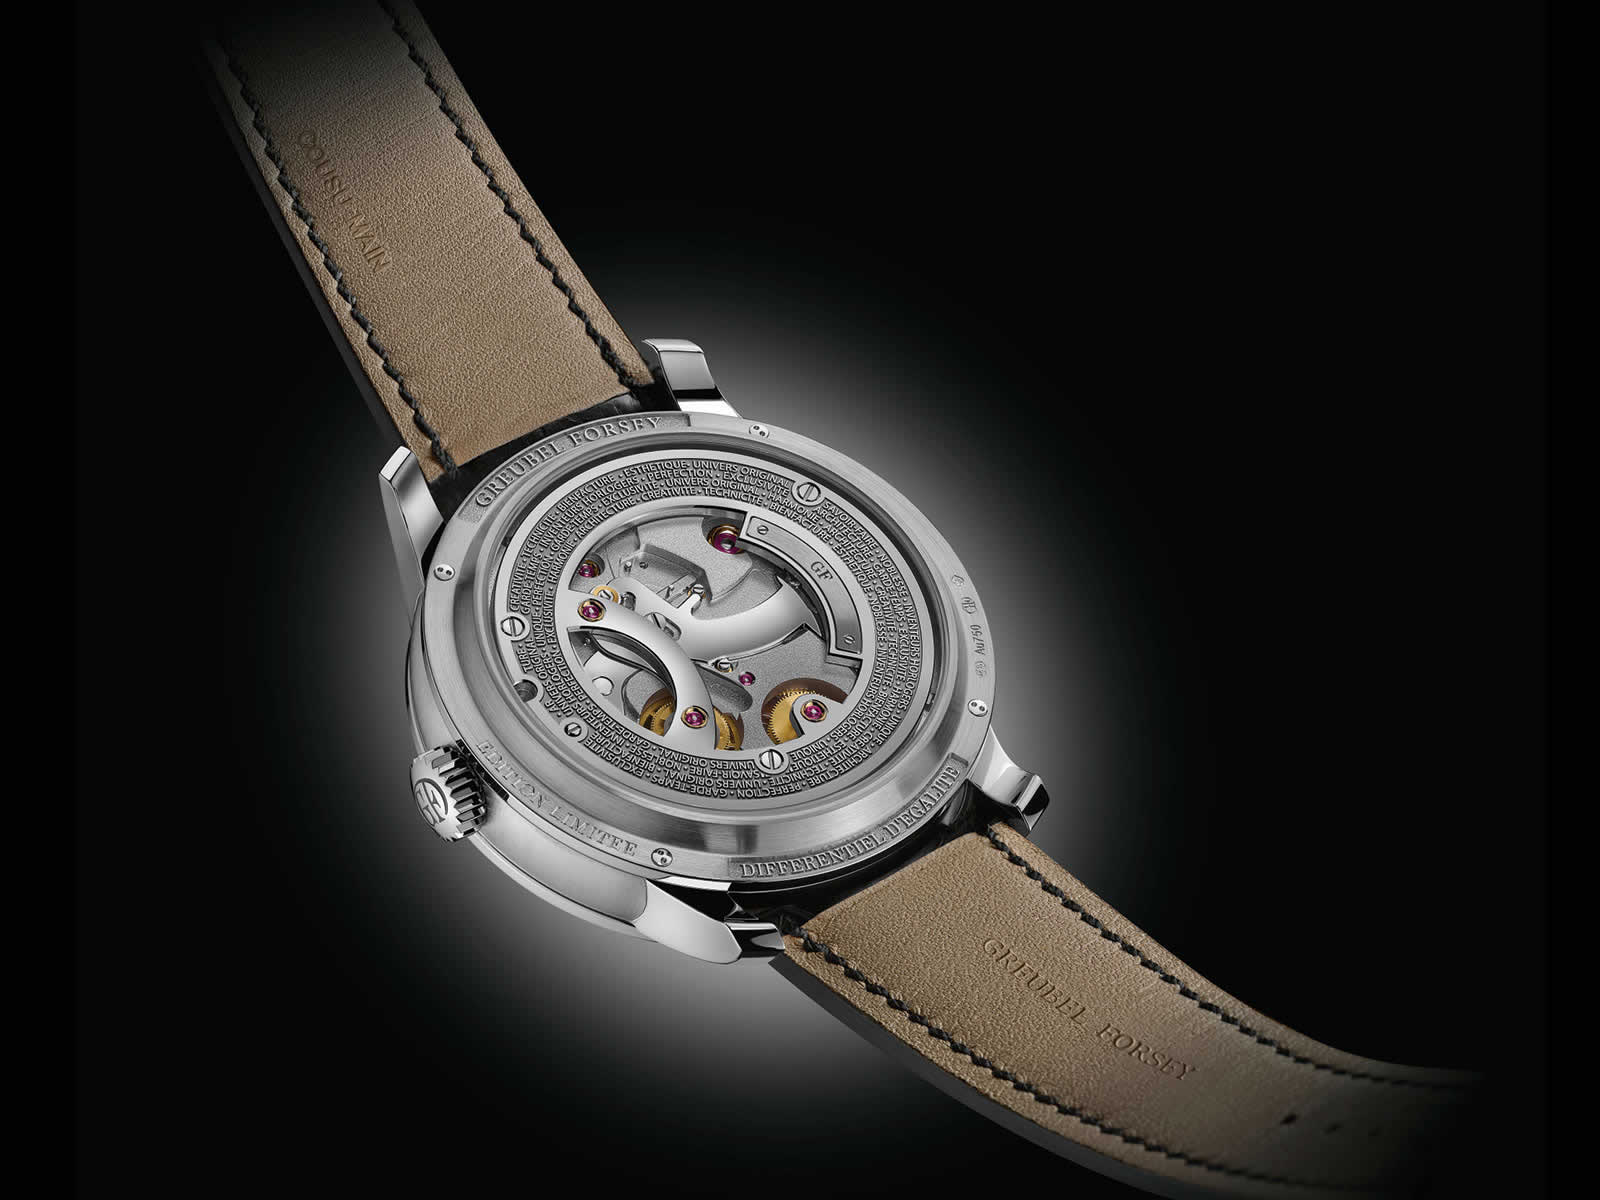 Greubel-Forsey-Differentiel-d-egalite-1821-High-Res-Sihh2018.jpg